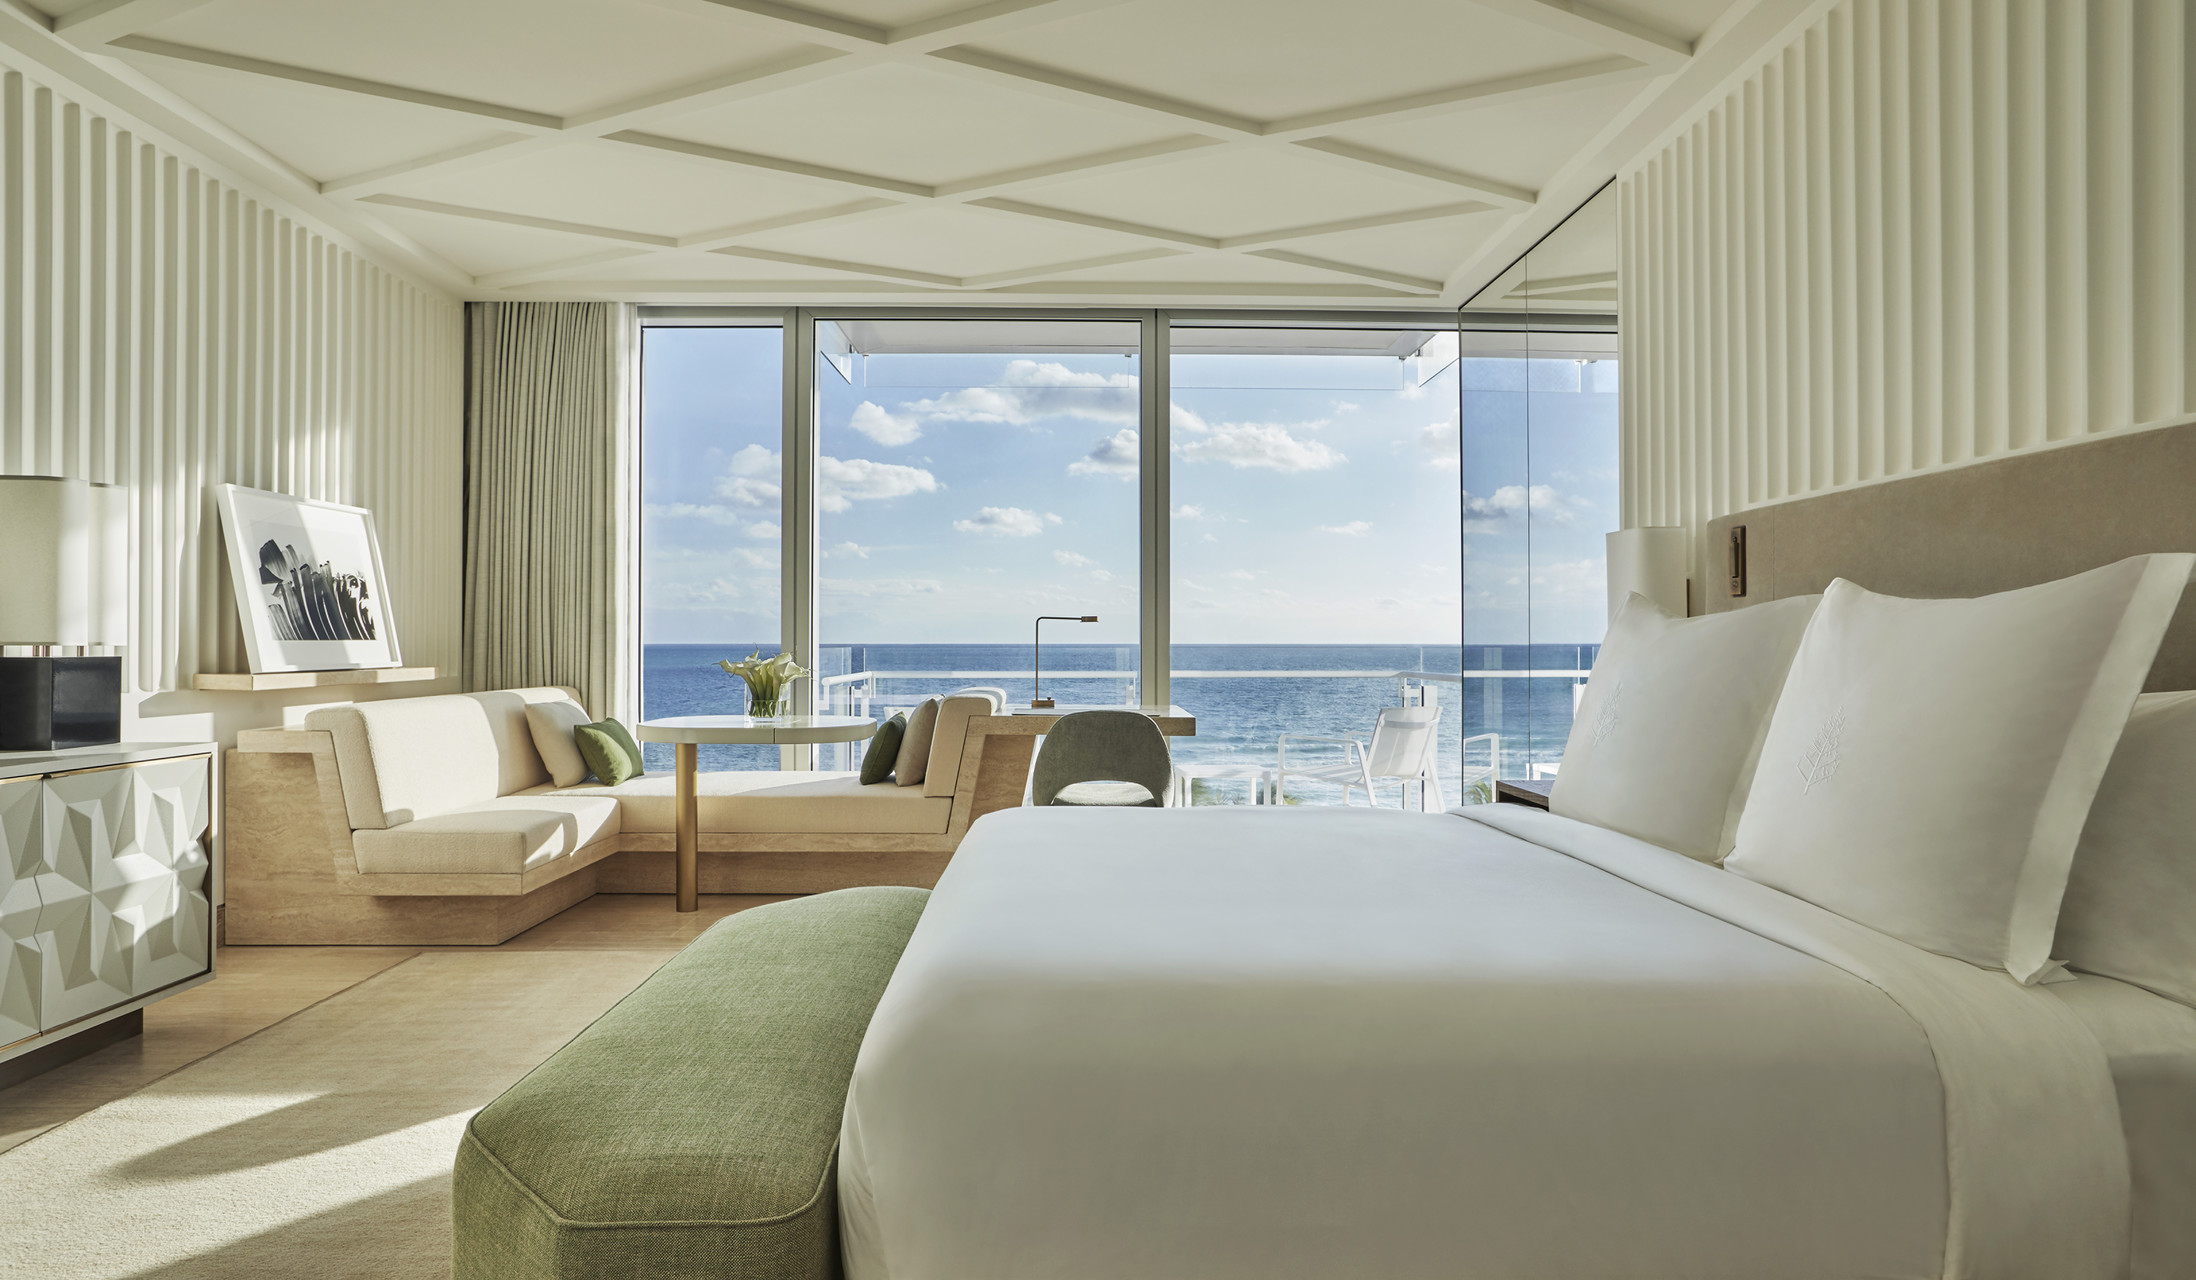 Four Seasons Surf Club In Miami Evokes Bygone Glamour